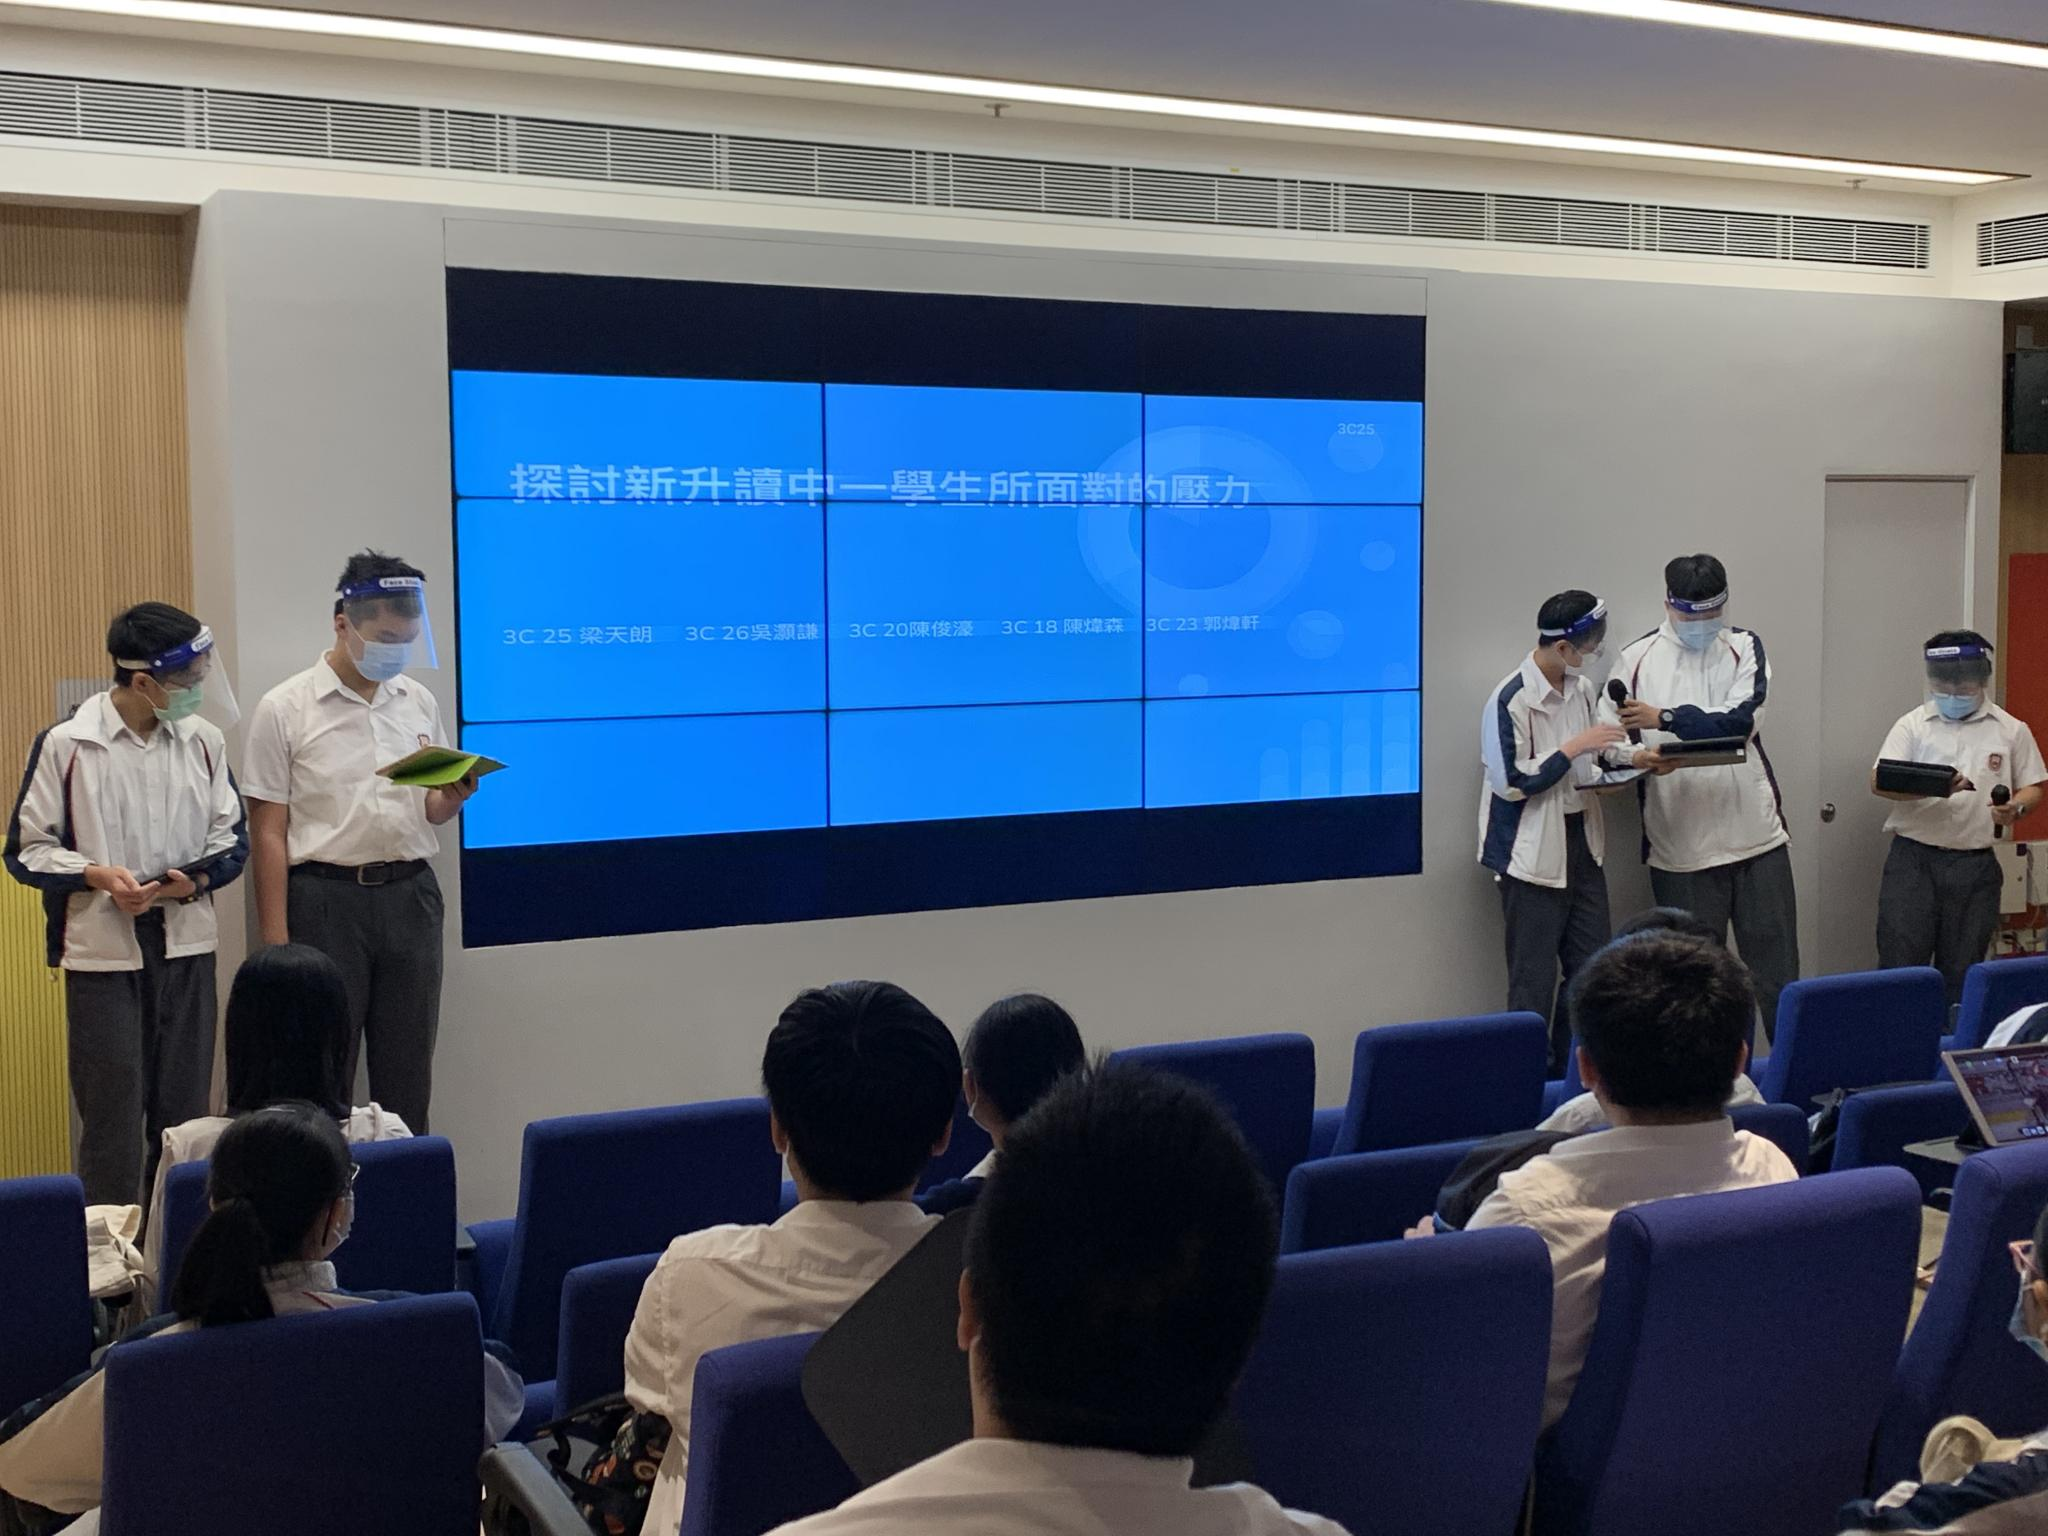 Five S3 students were presenting their ideas about stress faced by S1 students.